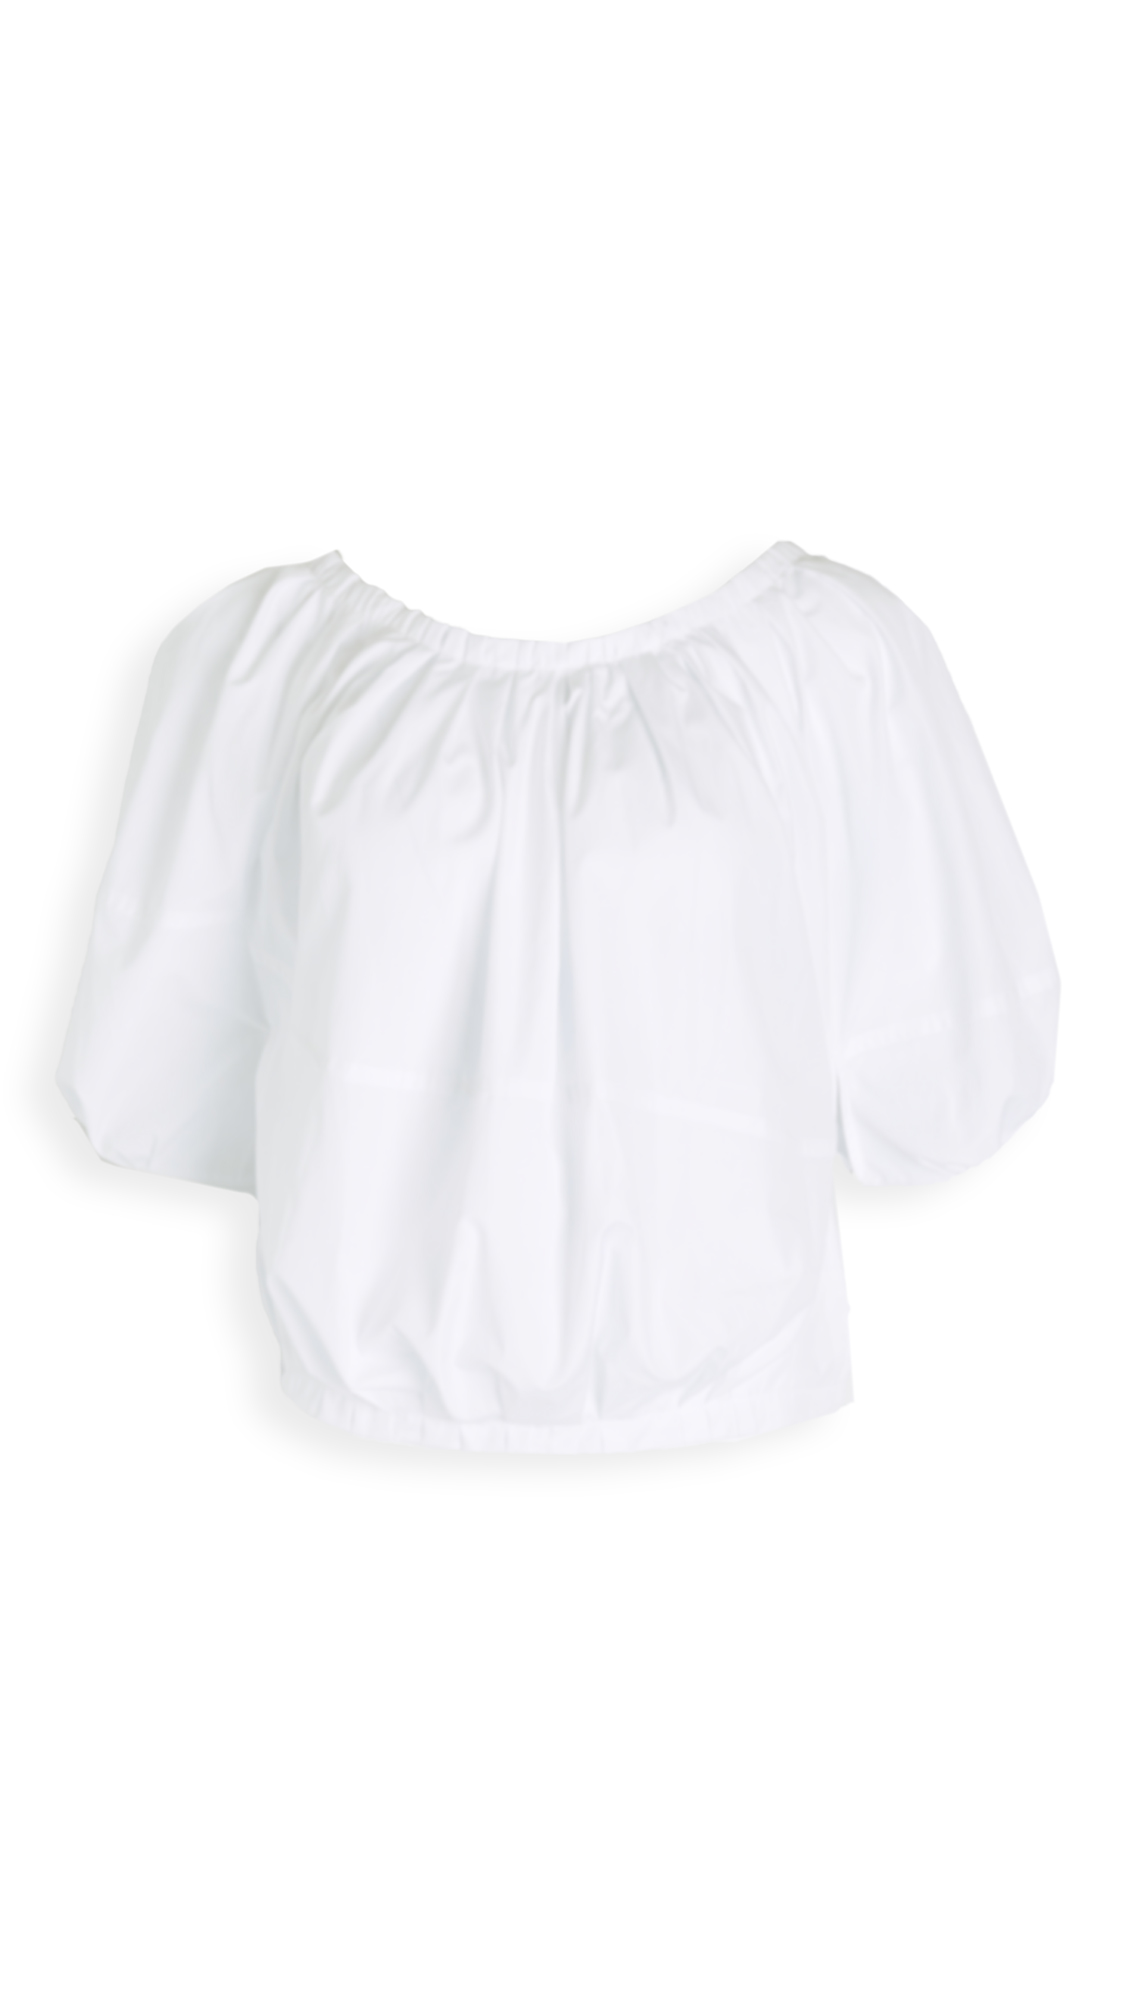 Marni Crew Neck Top - 40% Off Sale